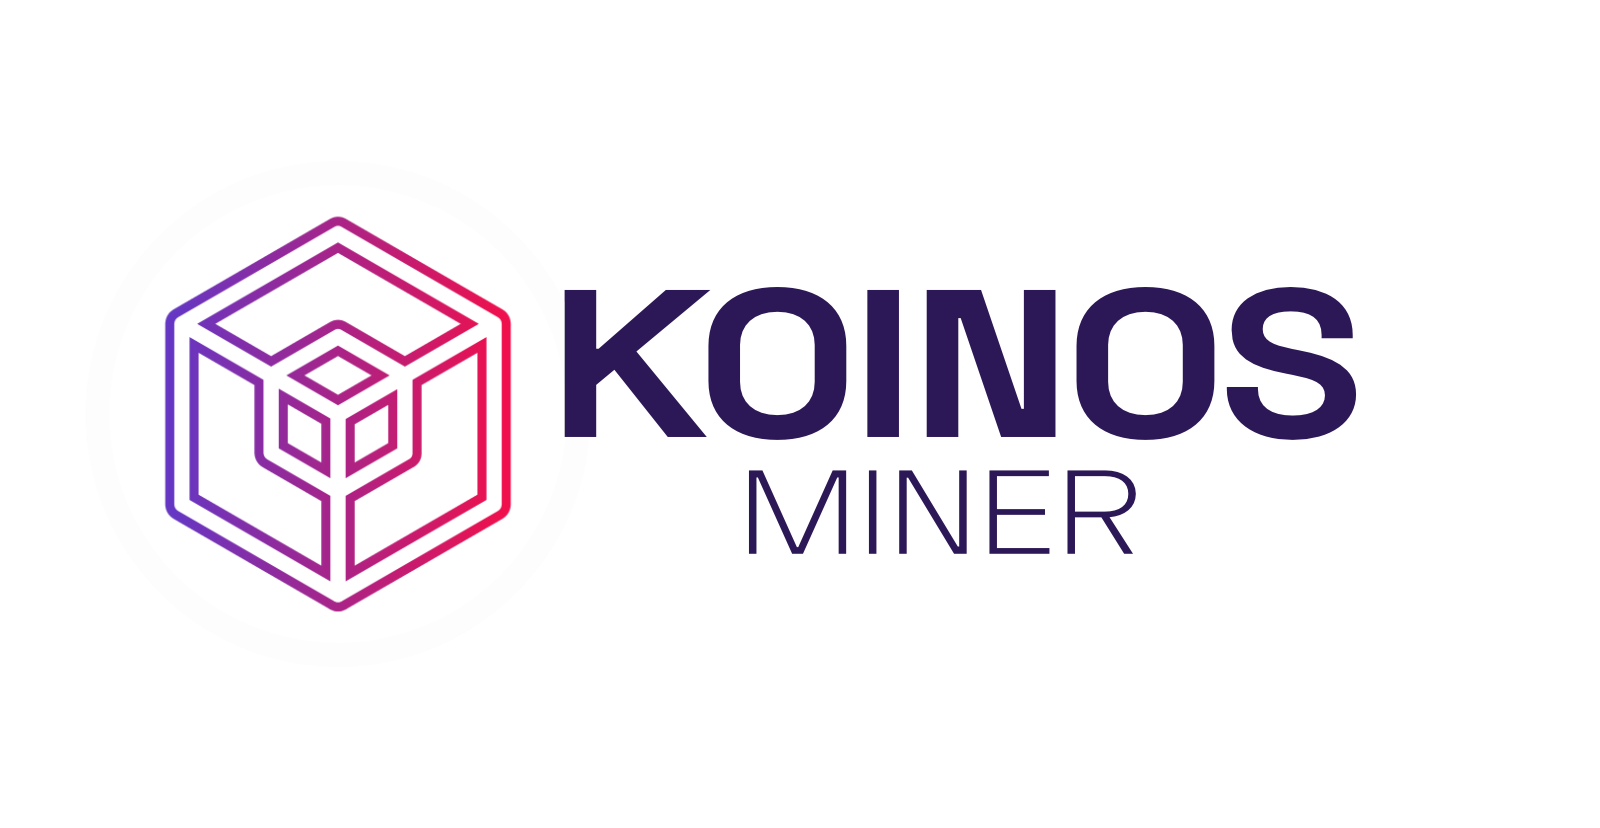 Mining Crypto With Only Your CPU Comes True With KOINOS